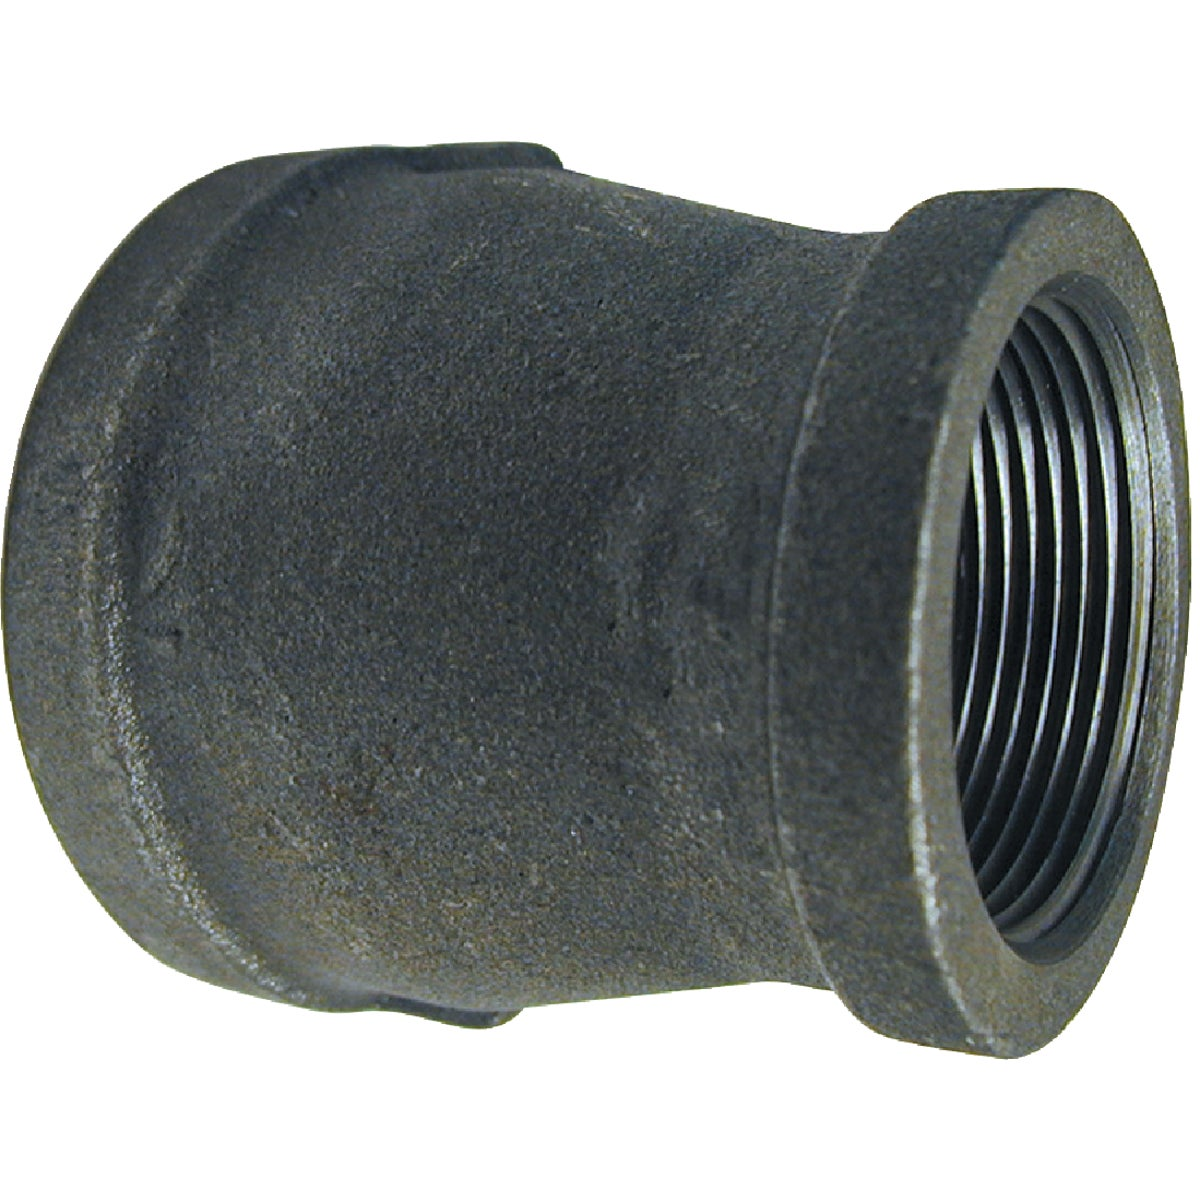 1/2X1/4 BLACK COUPLING - 521-331BG by Mueller B K